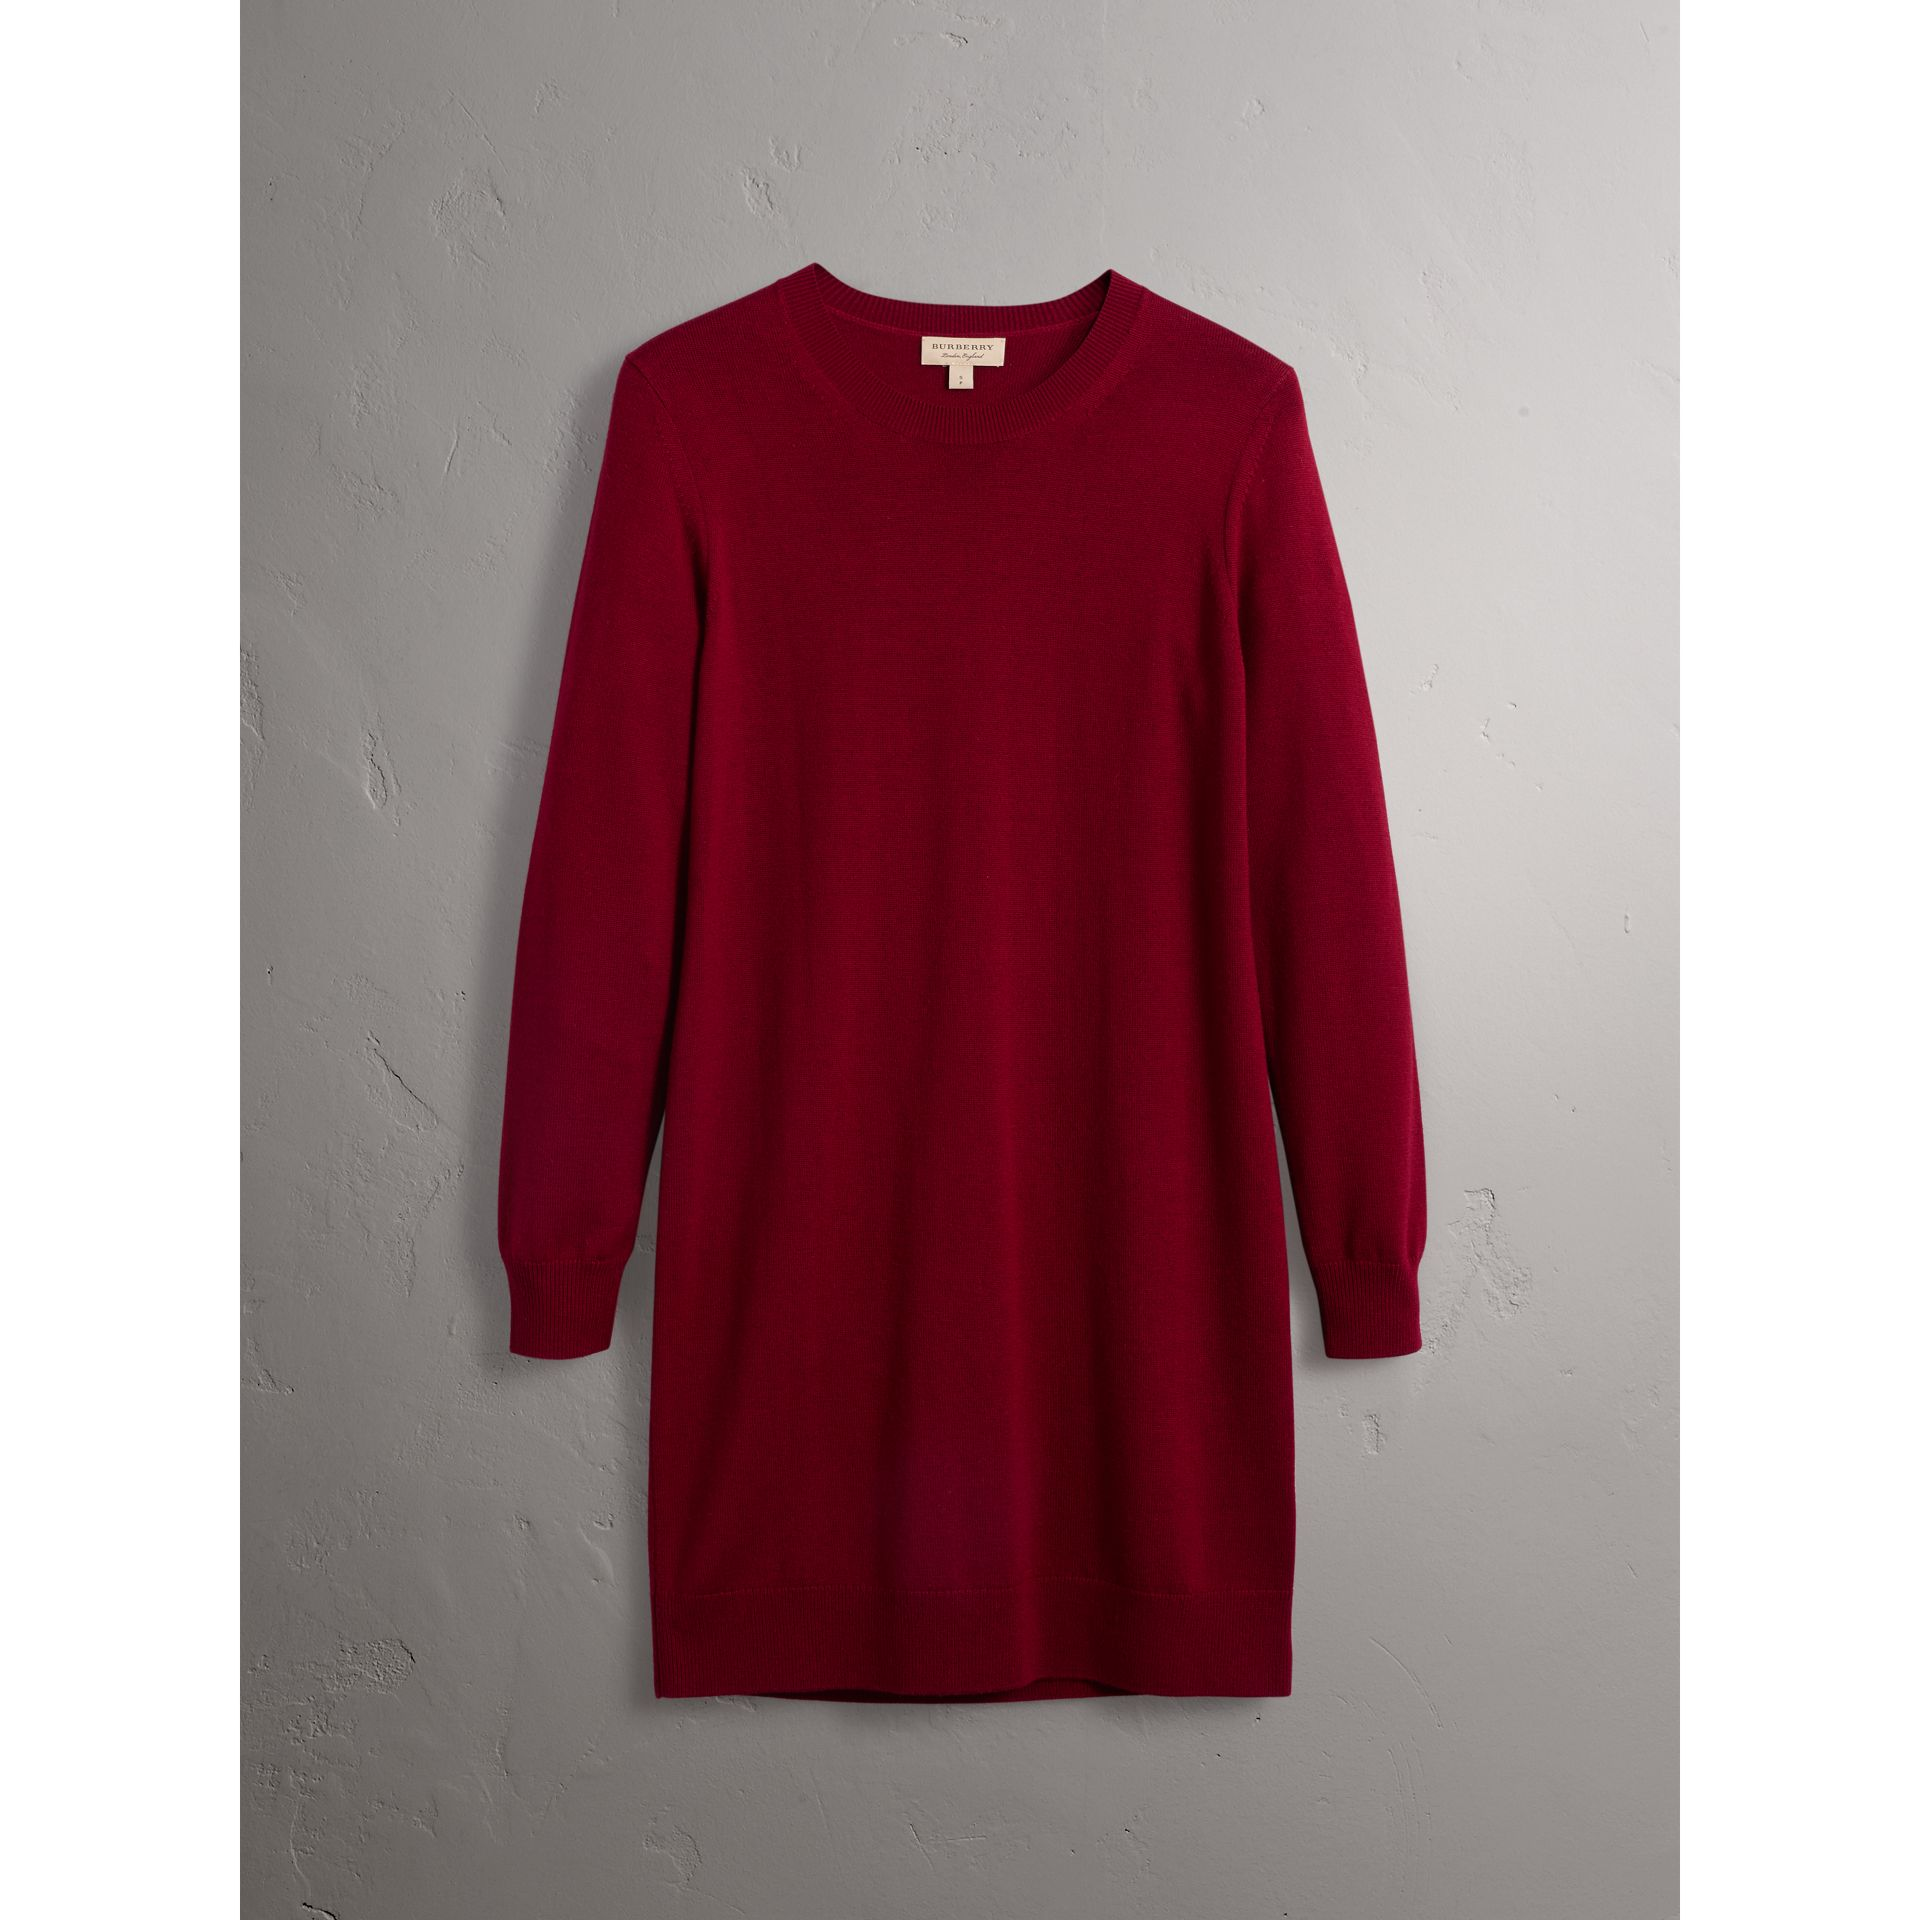 Check Elbow Detail Merino Wool Sweater Dress in Burgundy - Women | Burberry - gallery image 4